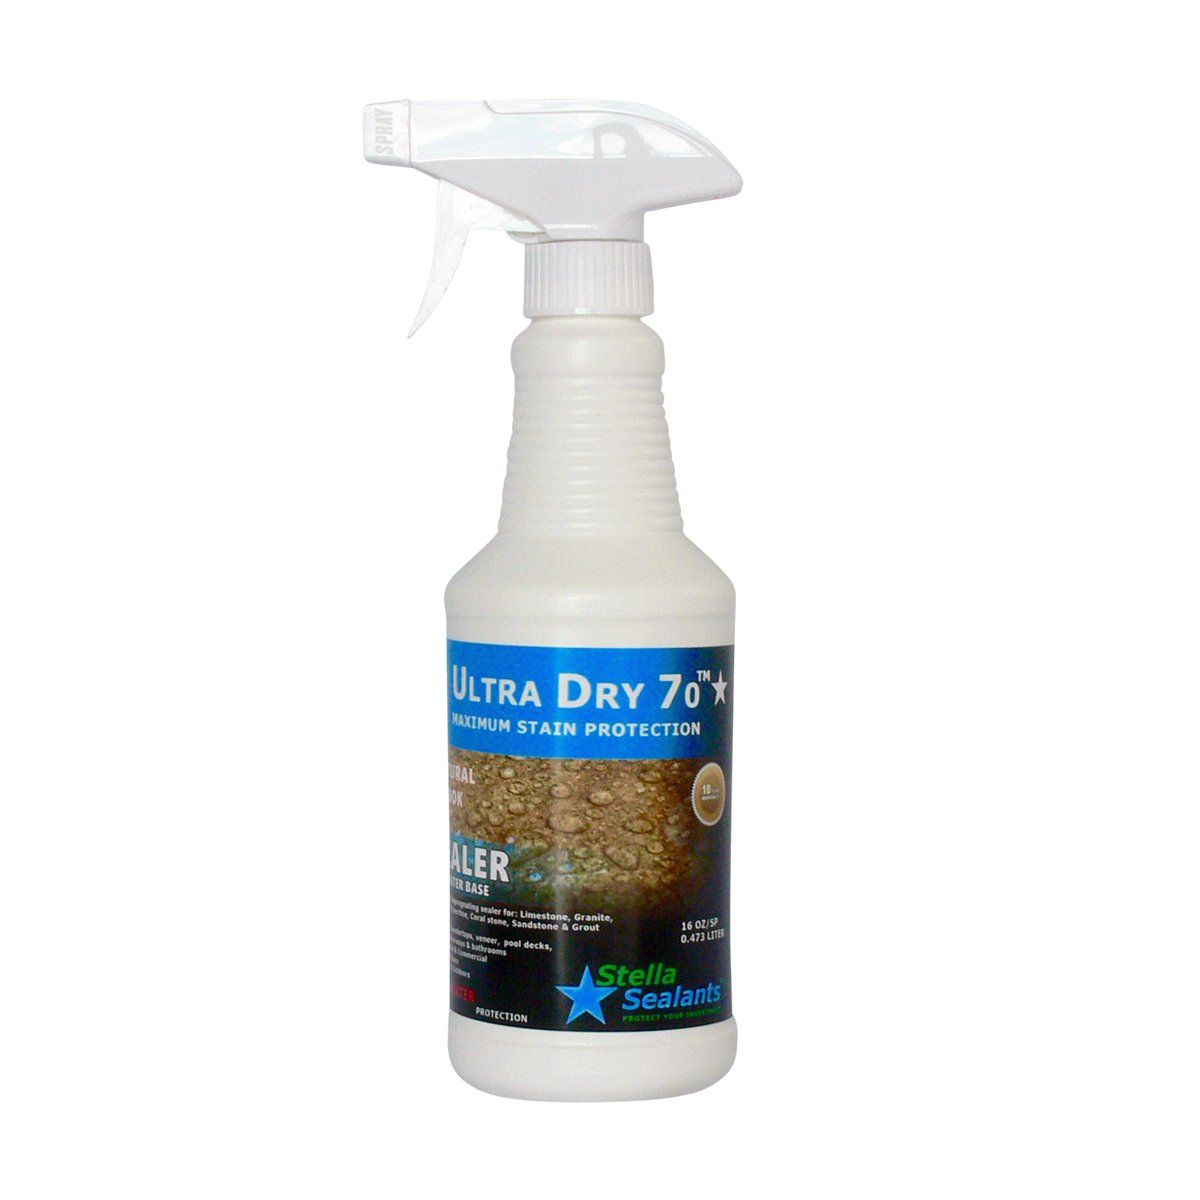 Ultra Dry 70 Stone Sealer Tile and Grout Sealer Countertop